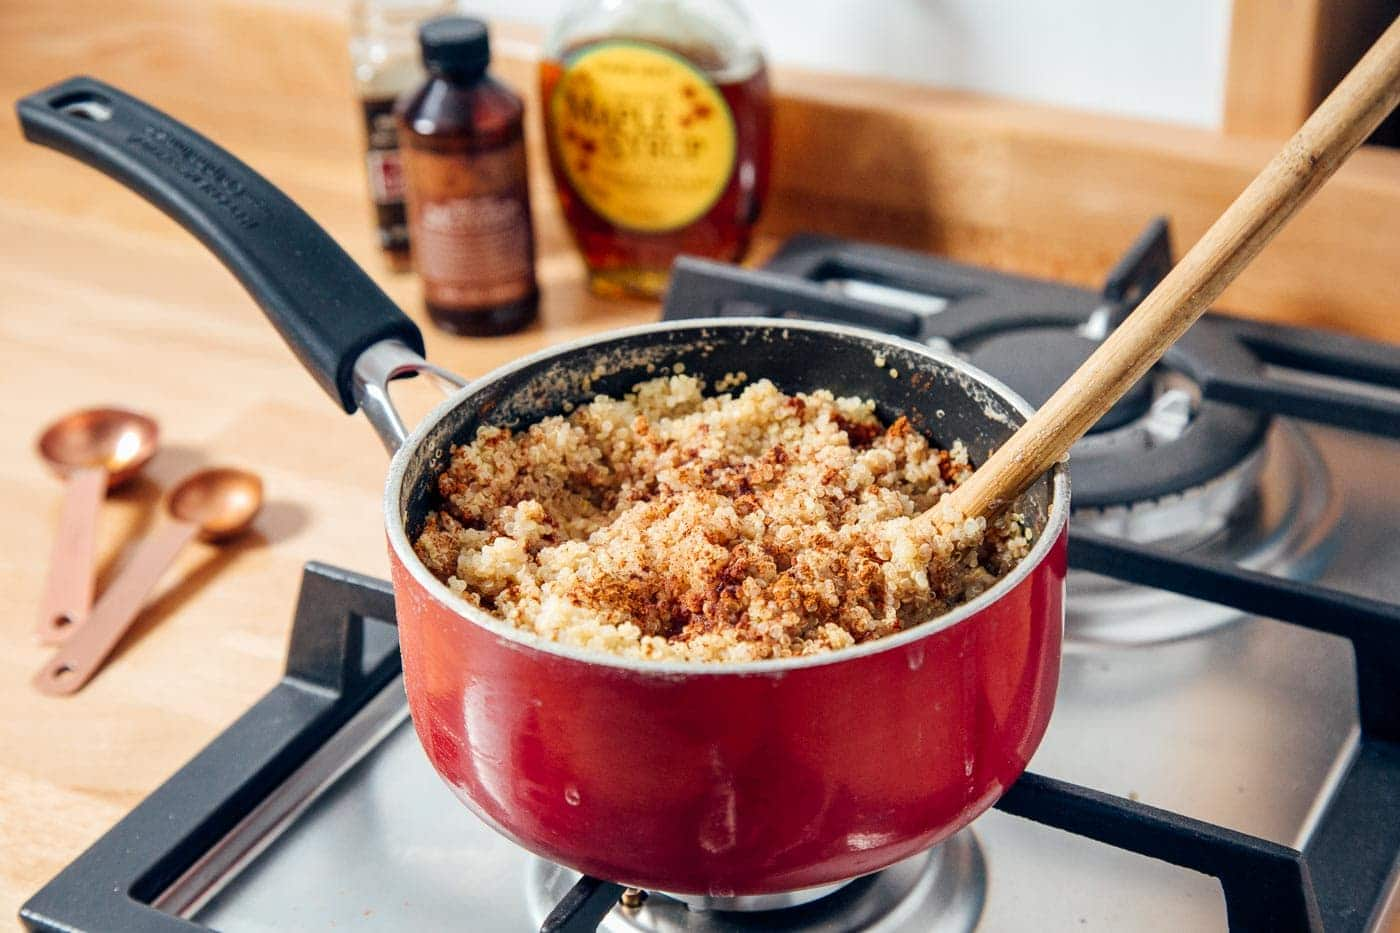 Quinoa cooking in a pot on a stove